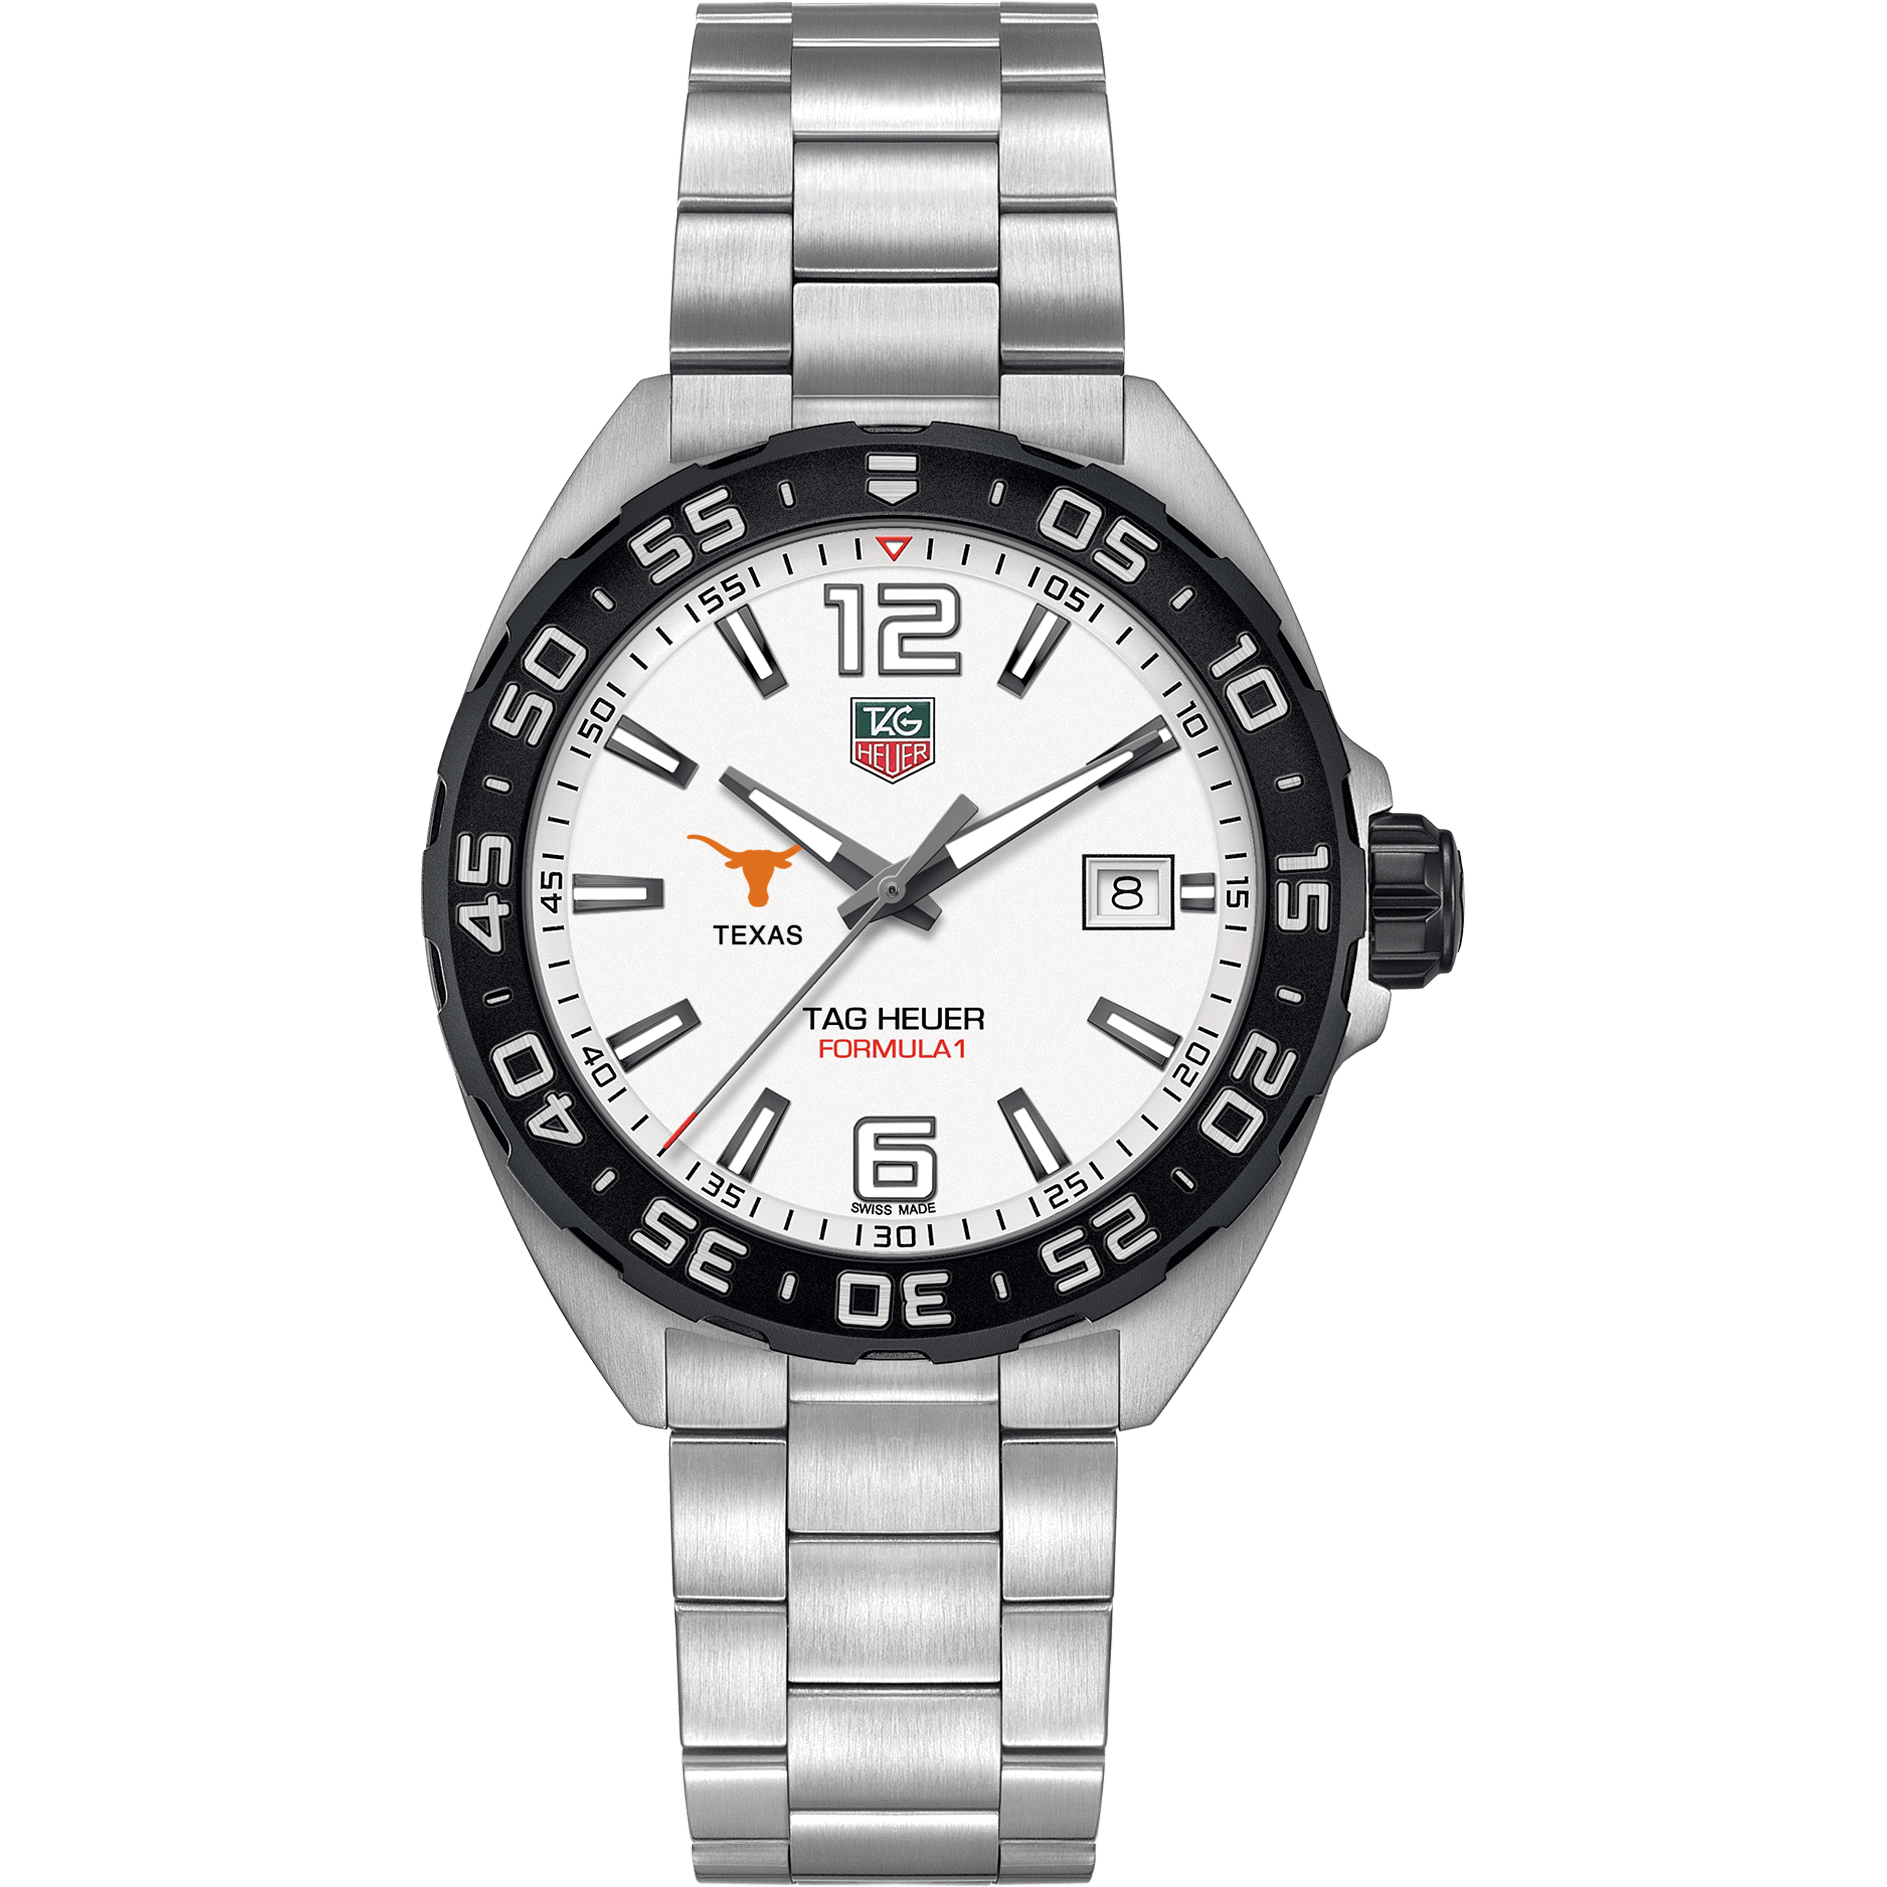 Texas Men's TAG Heuer Formula 1 - Image 2